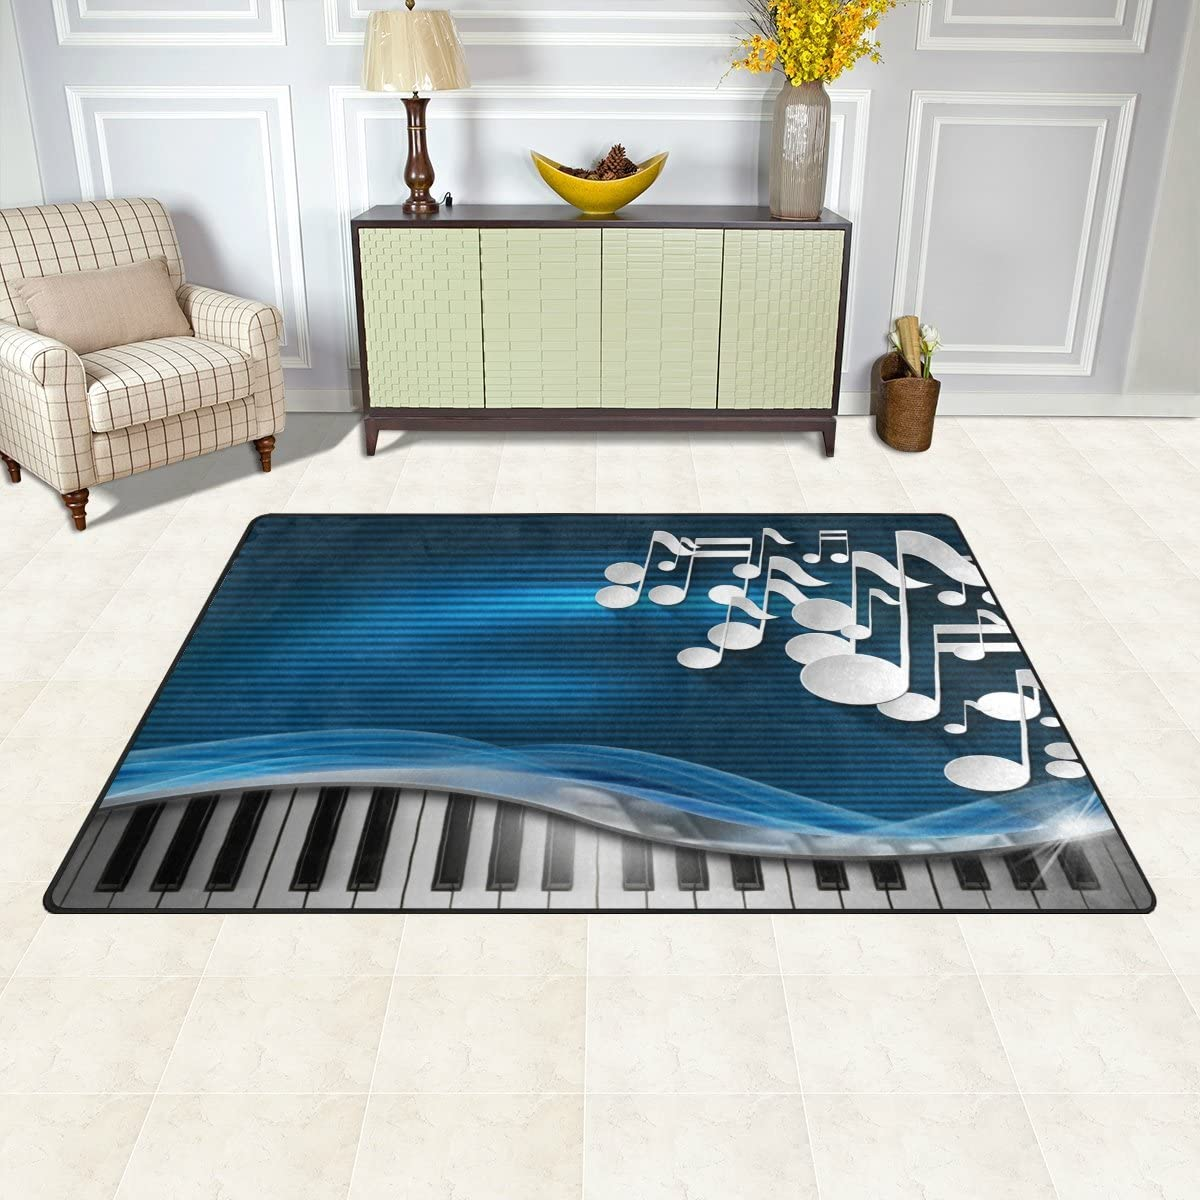 DEYYA Non-Slip Area Rugs Home Decor